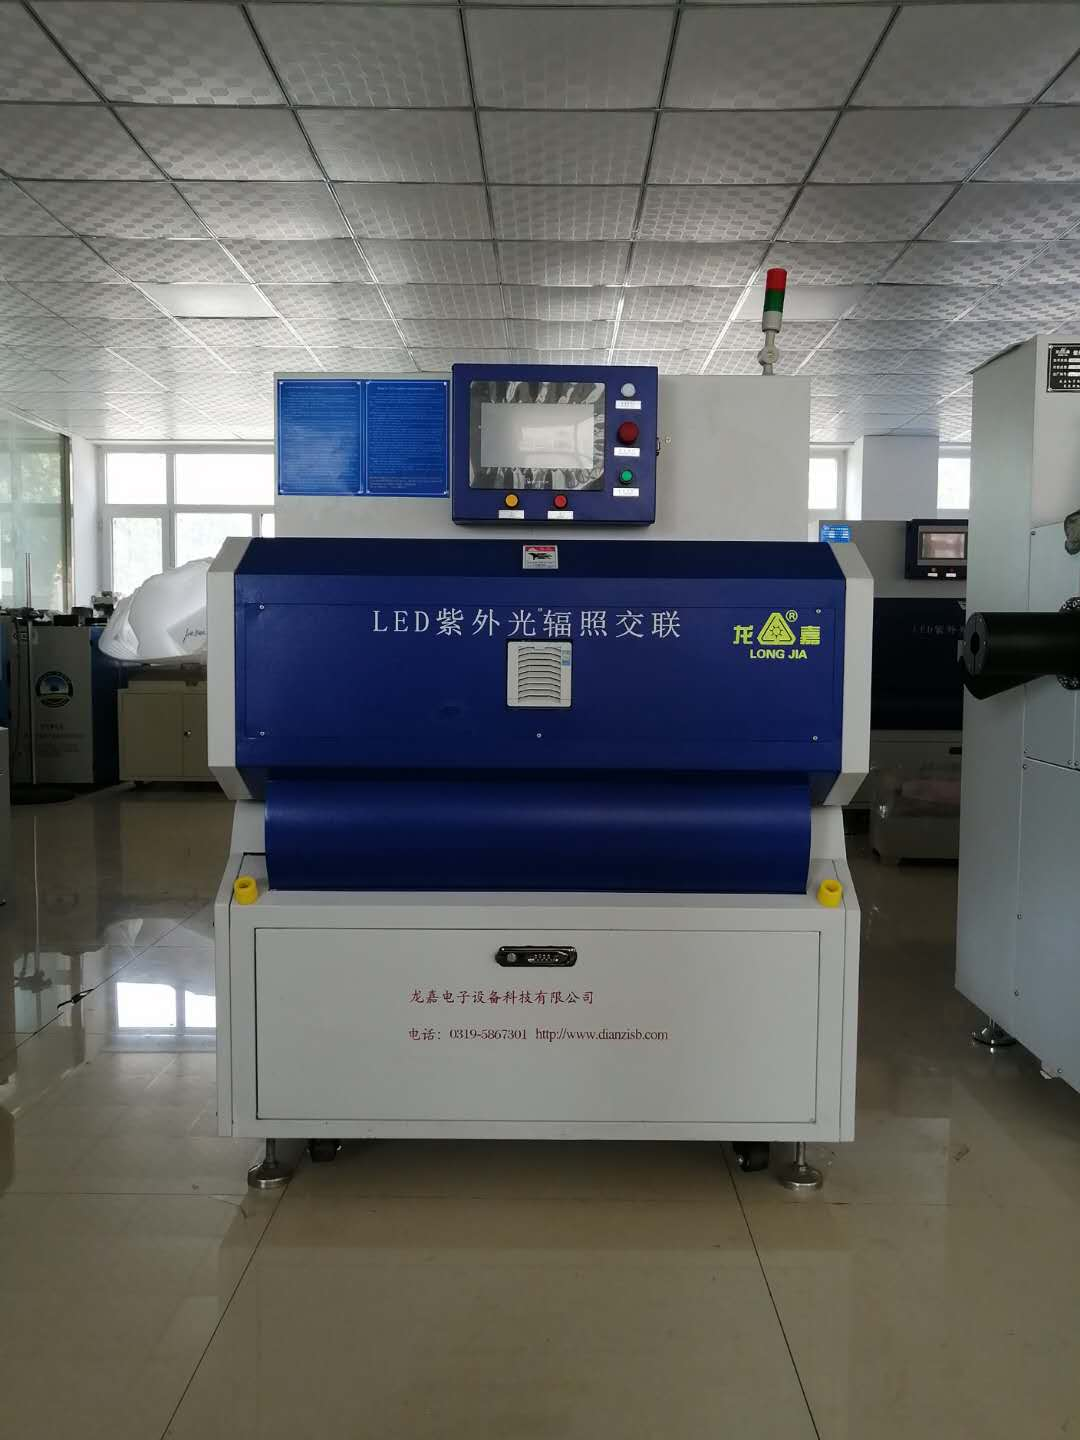 LED irradiation machine sent to Singapore